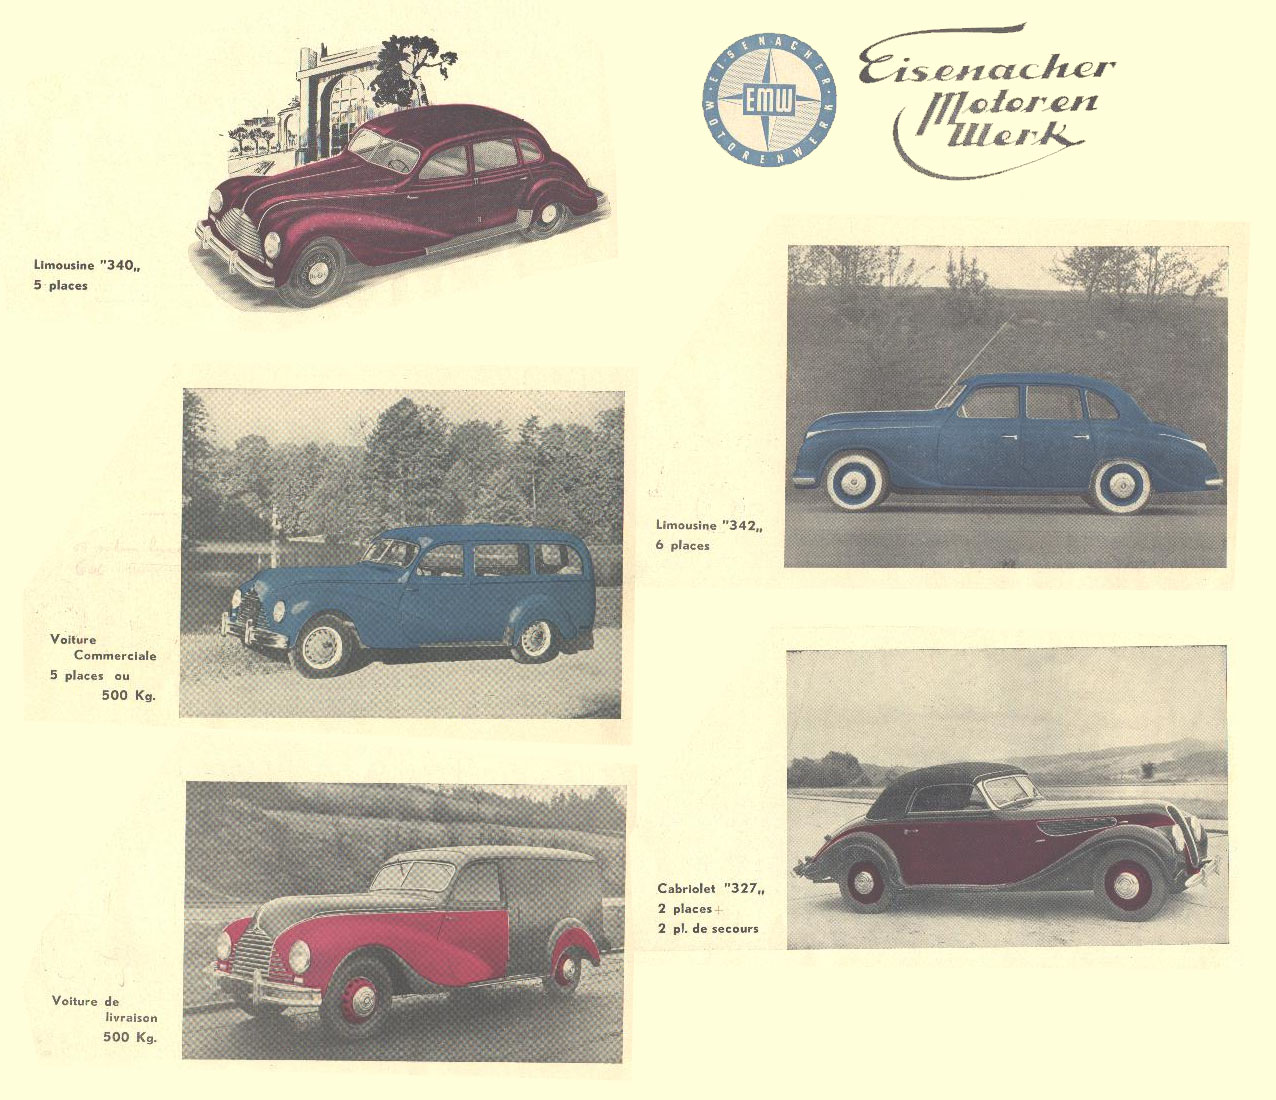 Models produced at EMW plant in 1950